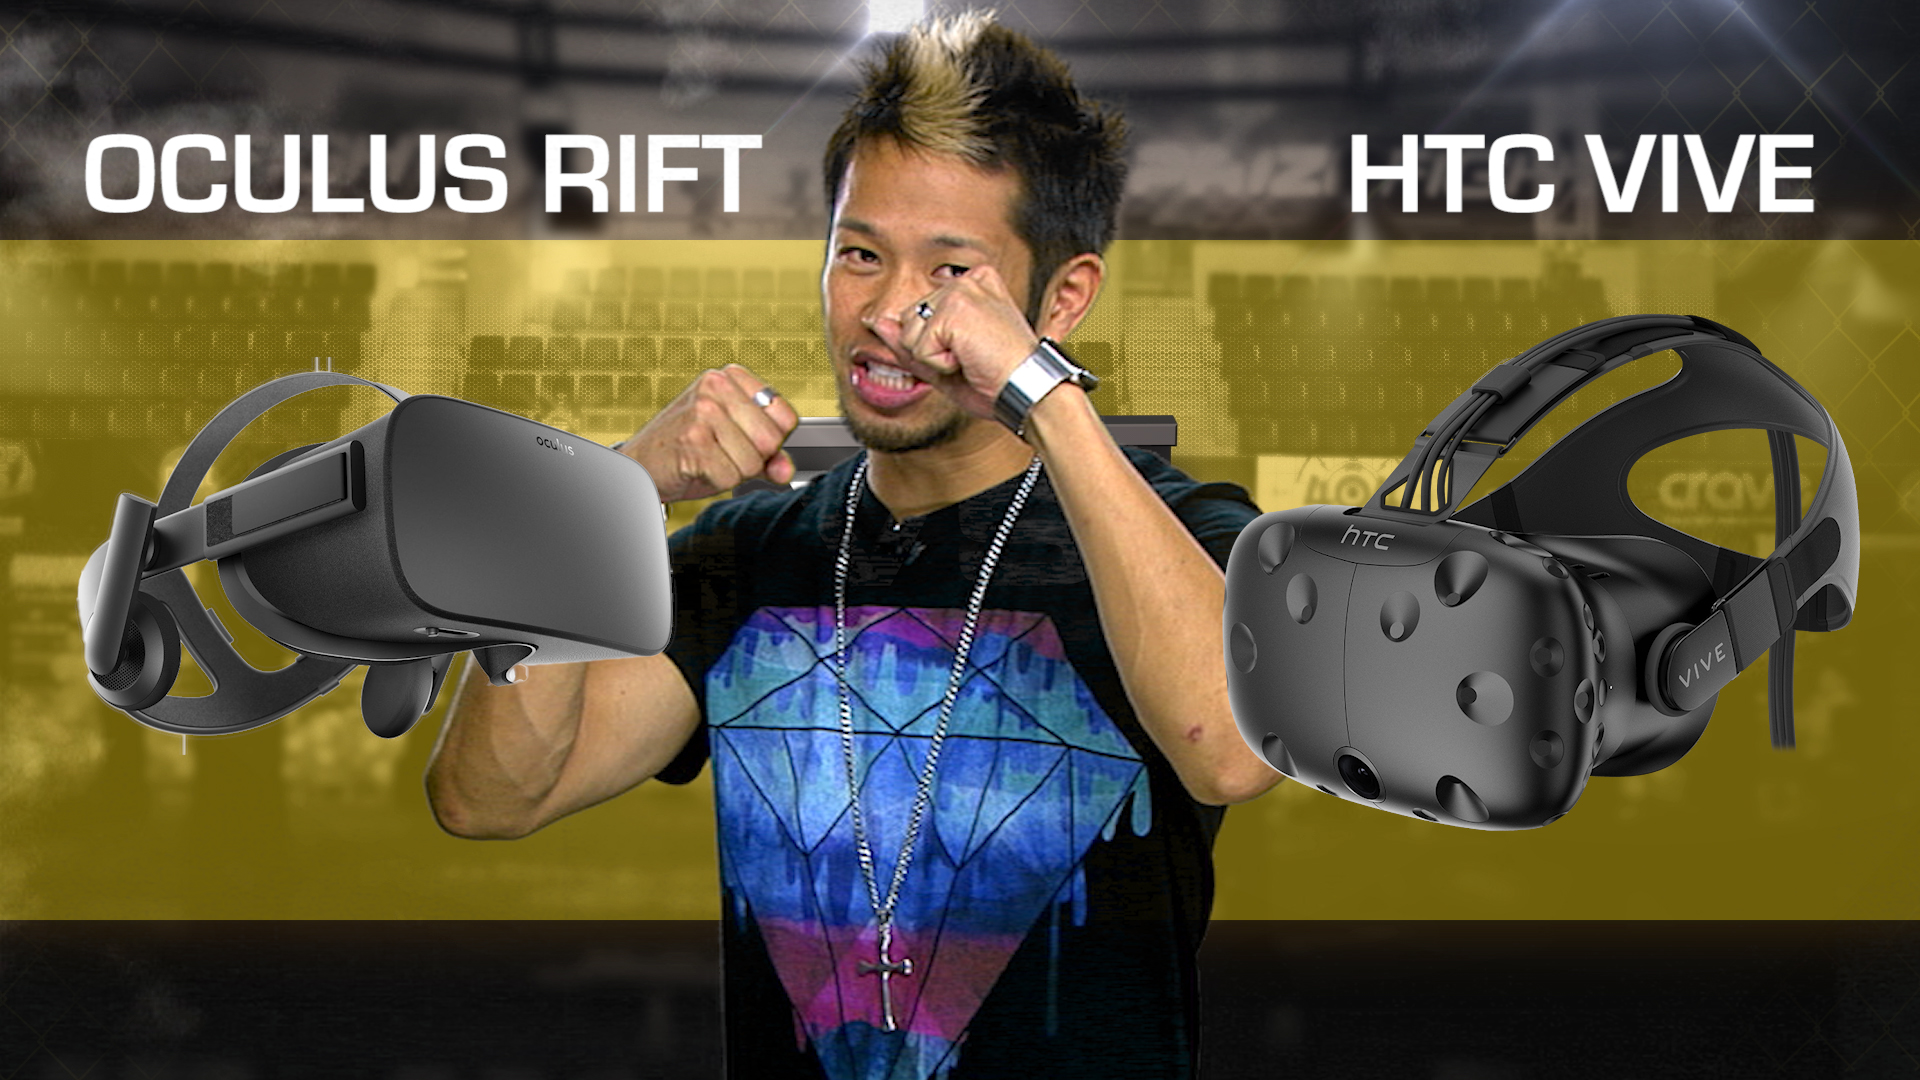 Video: Oculus Rift vs. HTC Vive